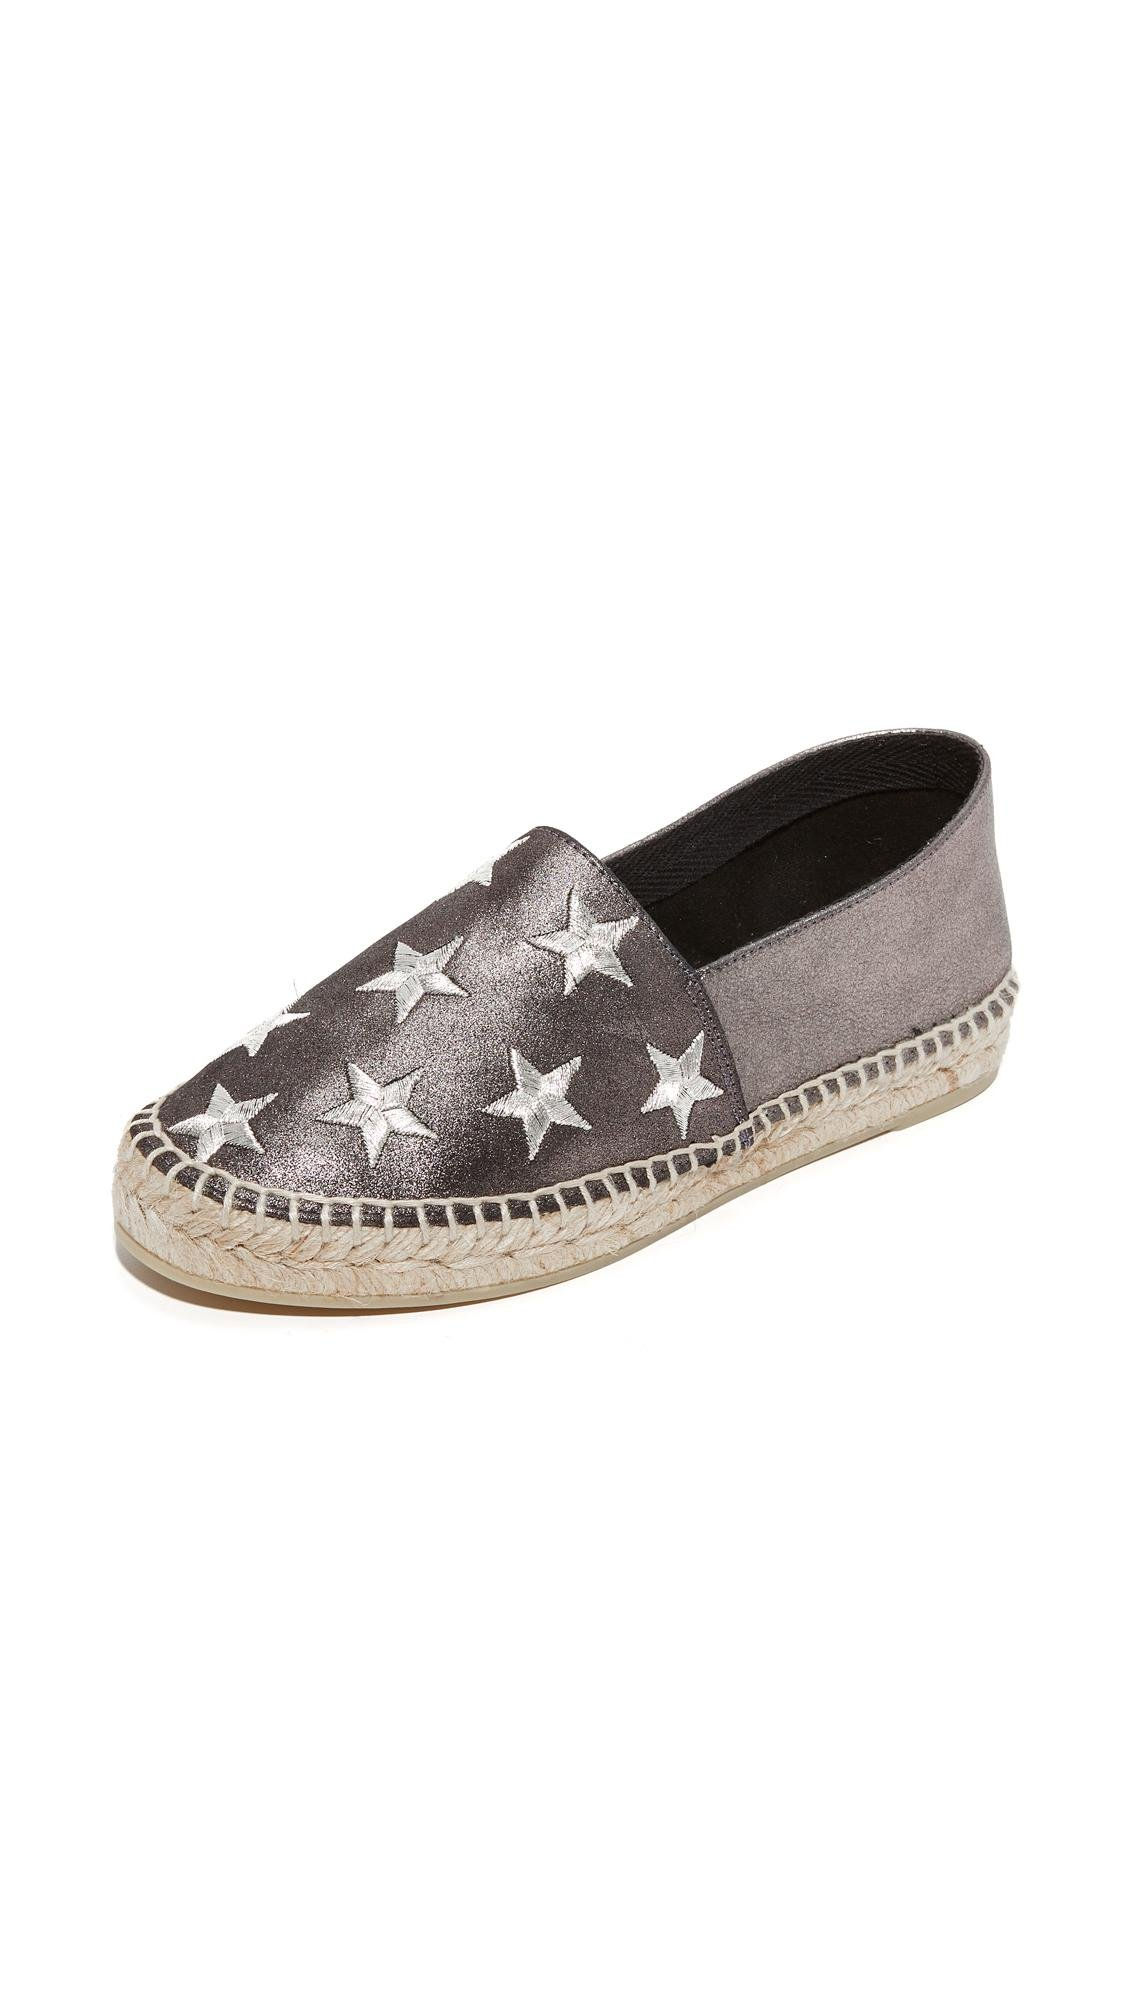 South Parade Star Embroidered Leather Espadrilles In